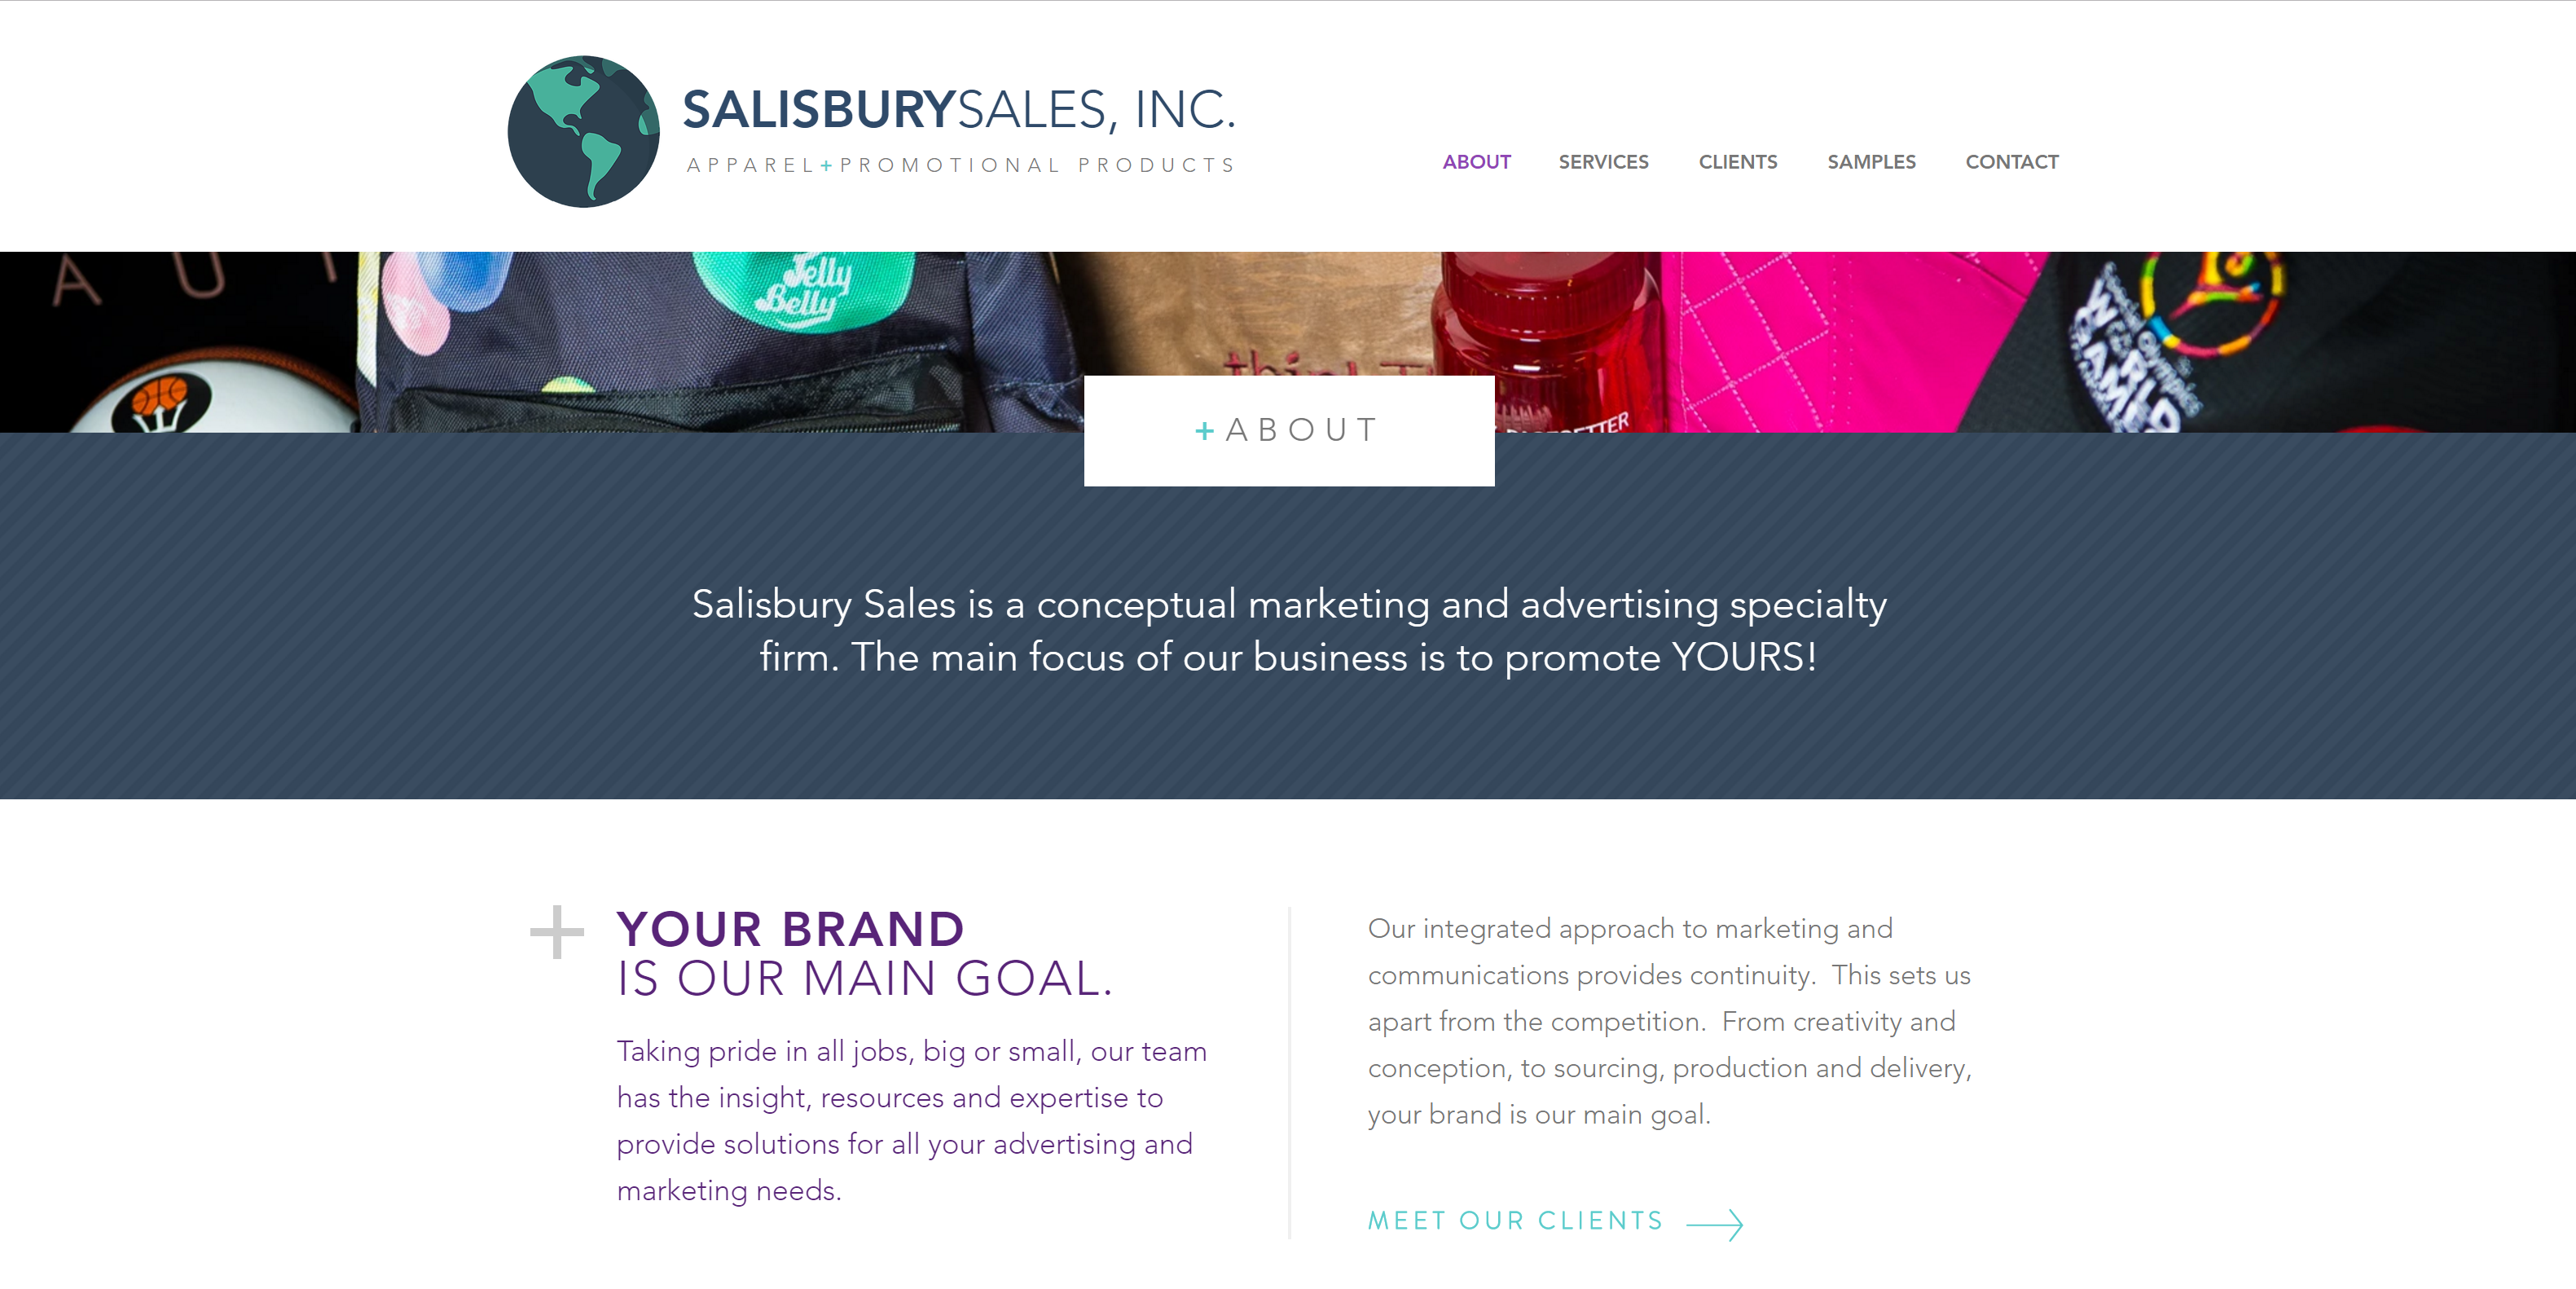 Sarah-Cas-Graphic-Design-Website-Design-Salisbury-Sales-05